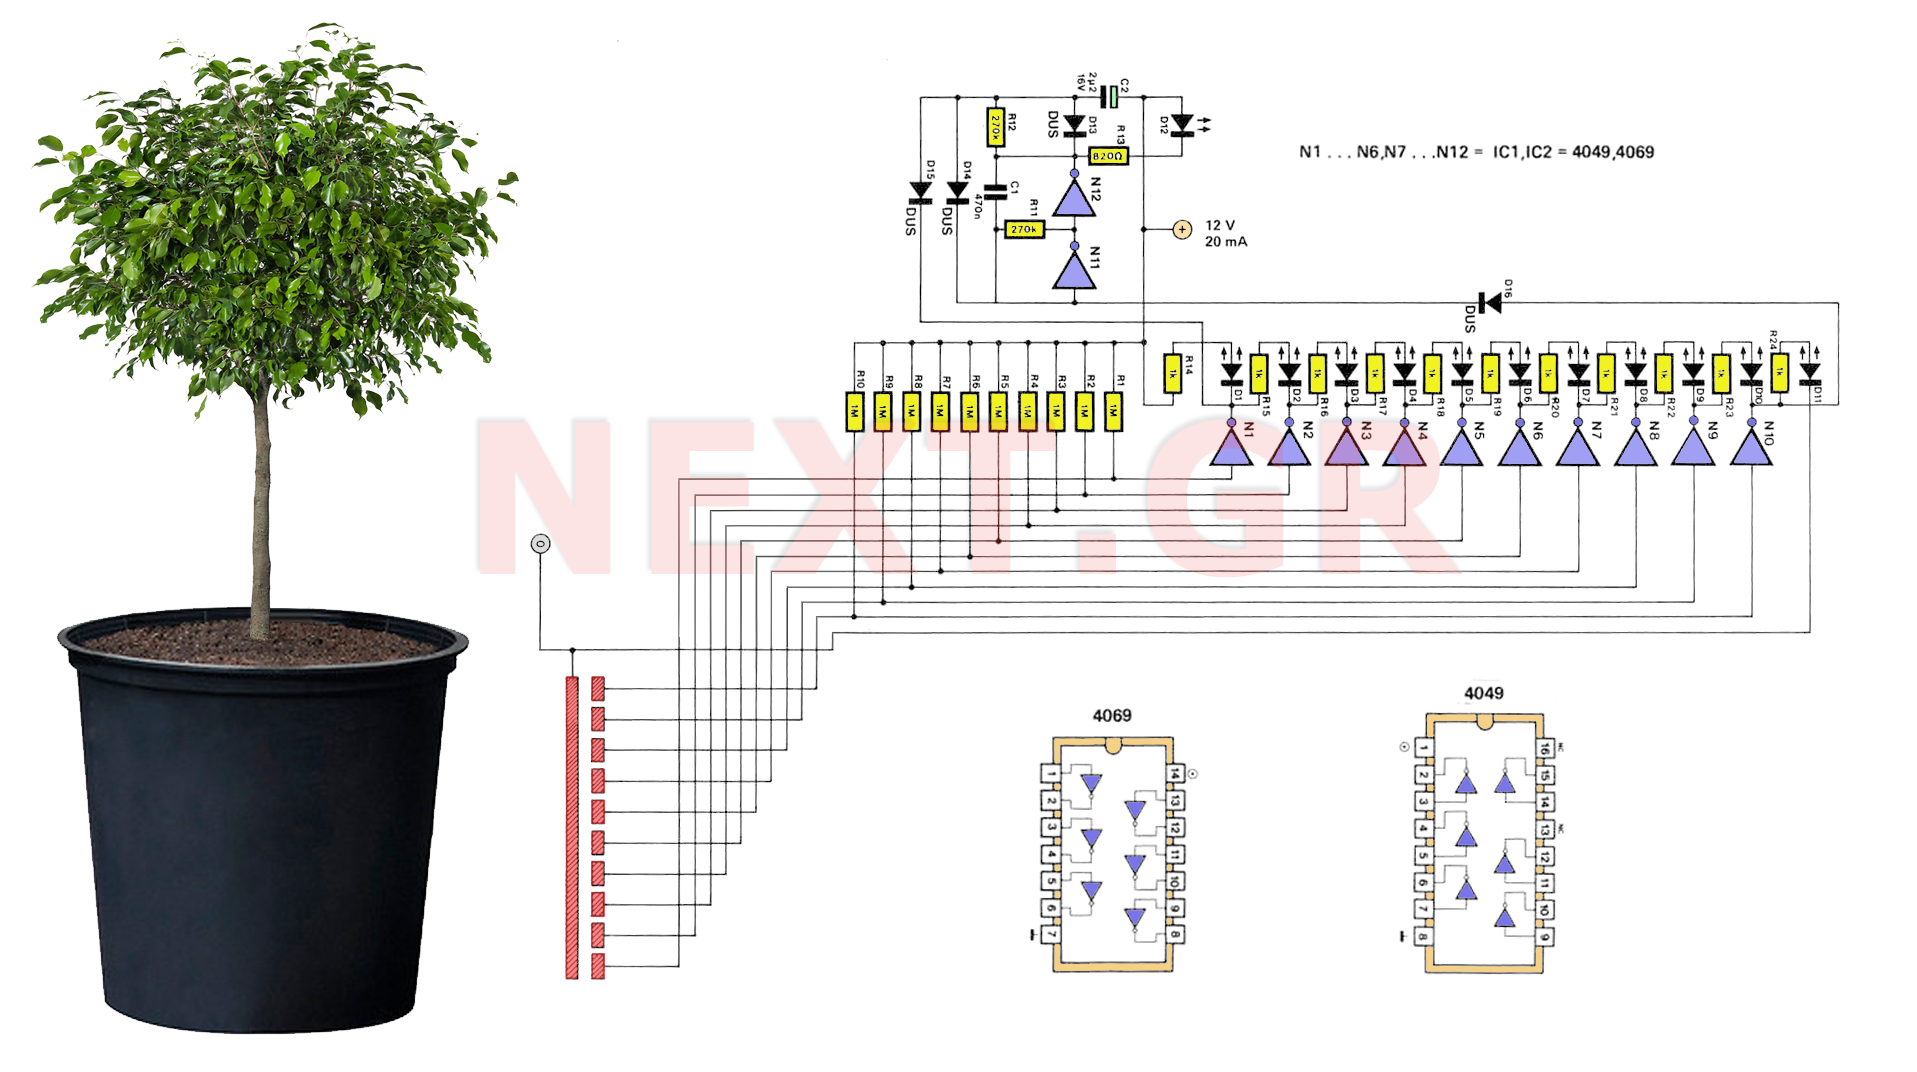 Plant-Pot Water Level Indicator Circuit - schematic